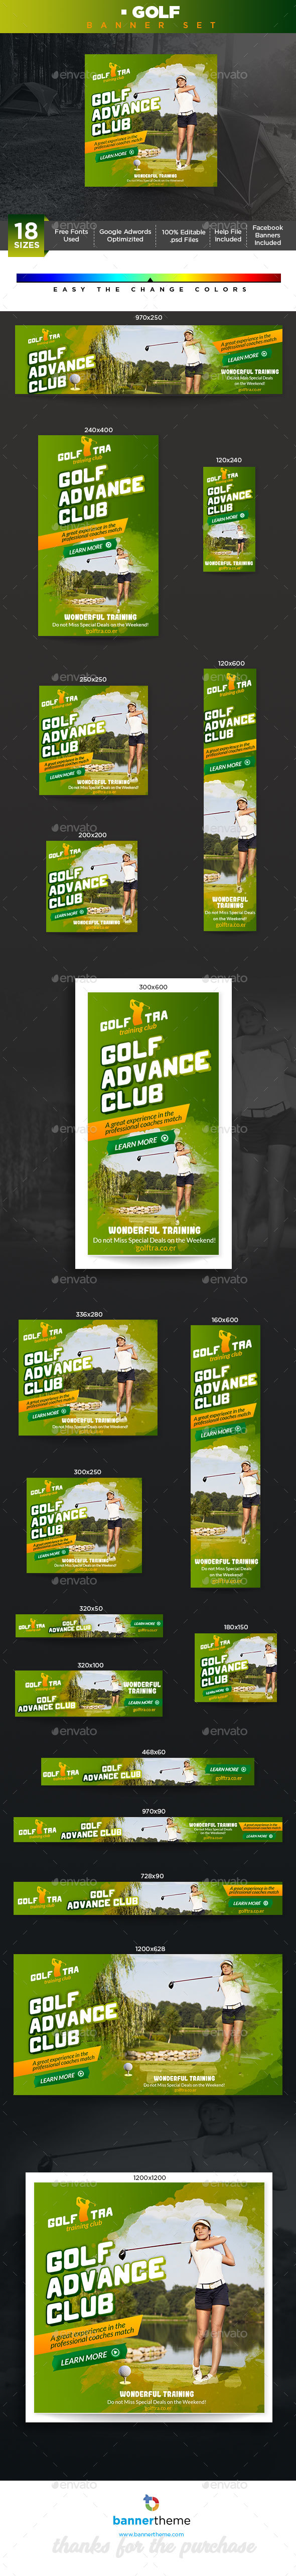 Golf Banner - Banners & Ads Web Elements